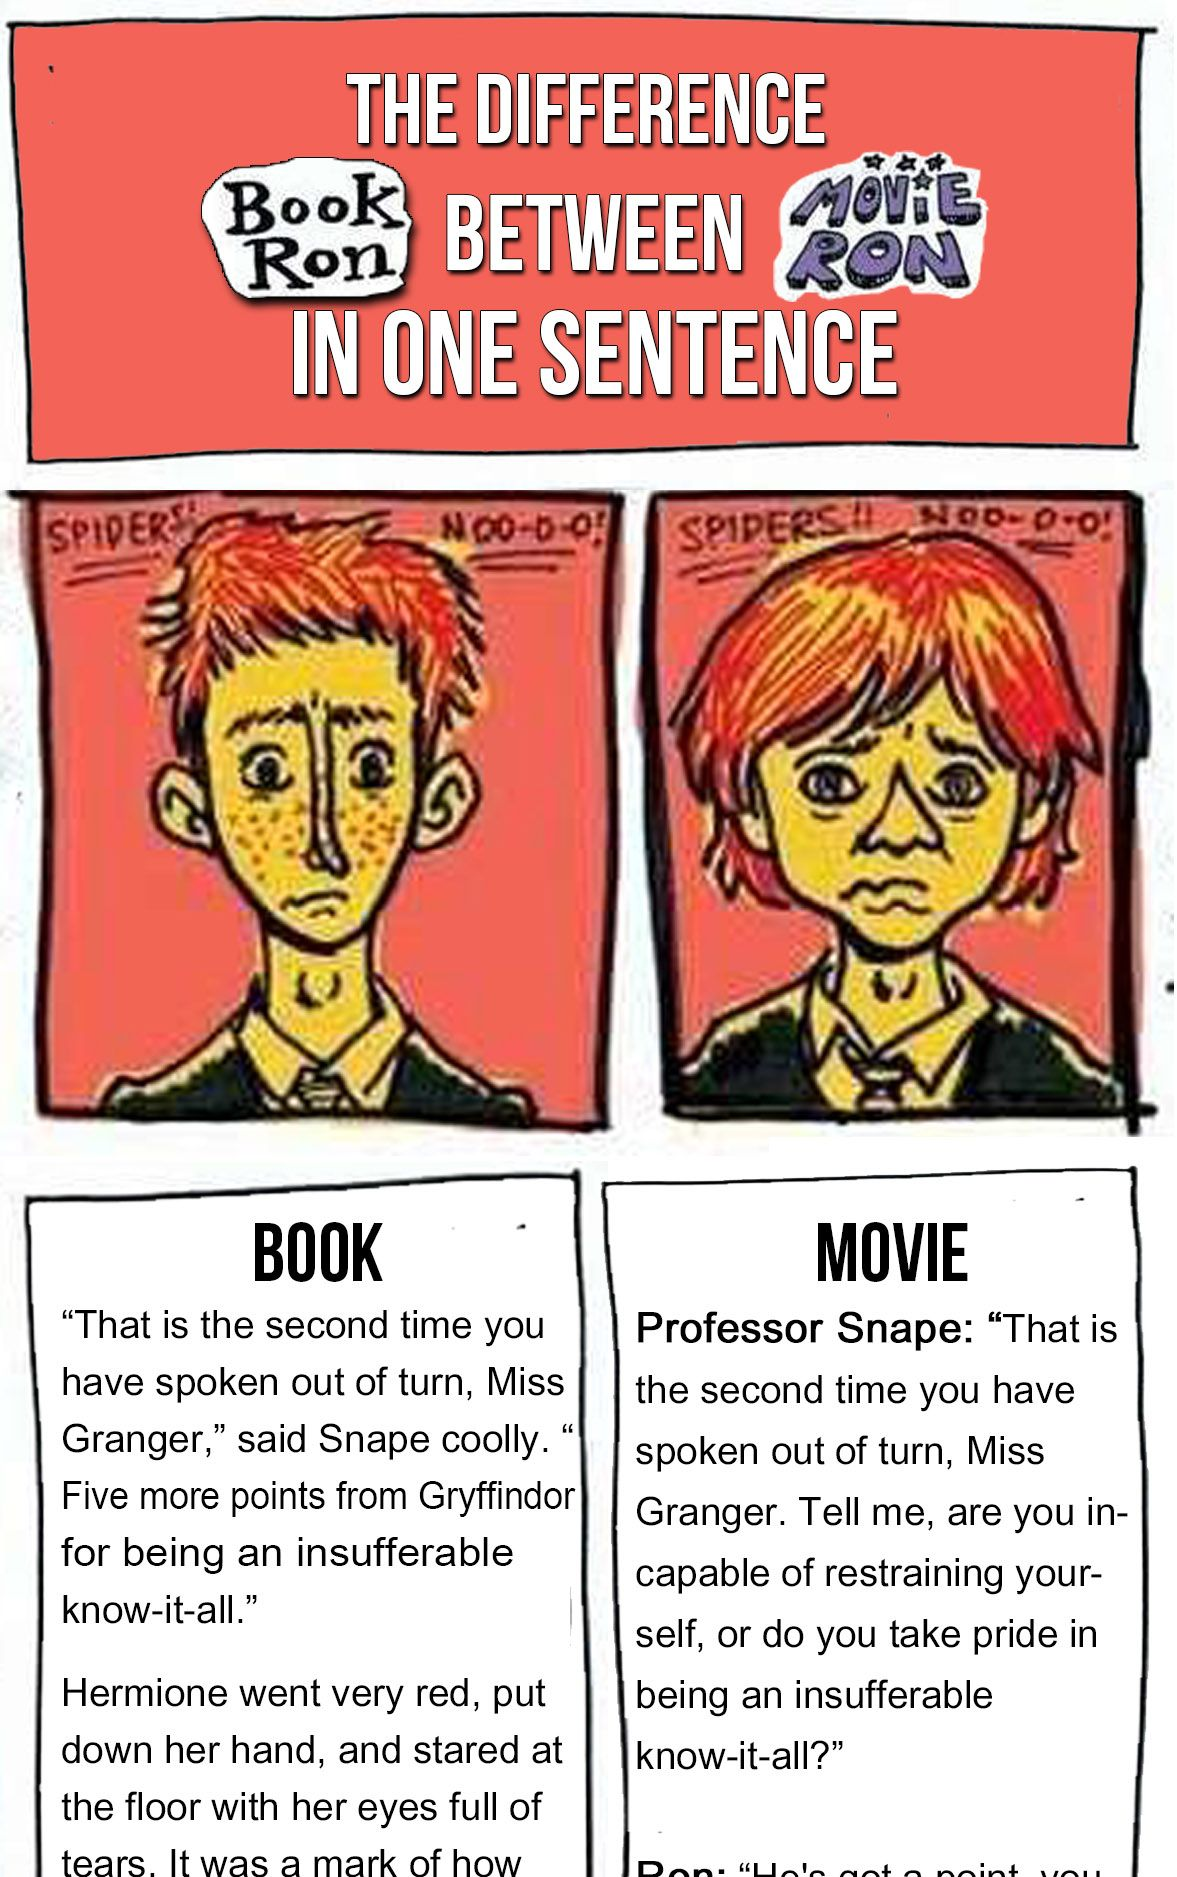 A Reddit User Found The Perfect Example Why Book Ron Is 100x Better Than Movie